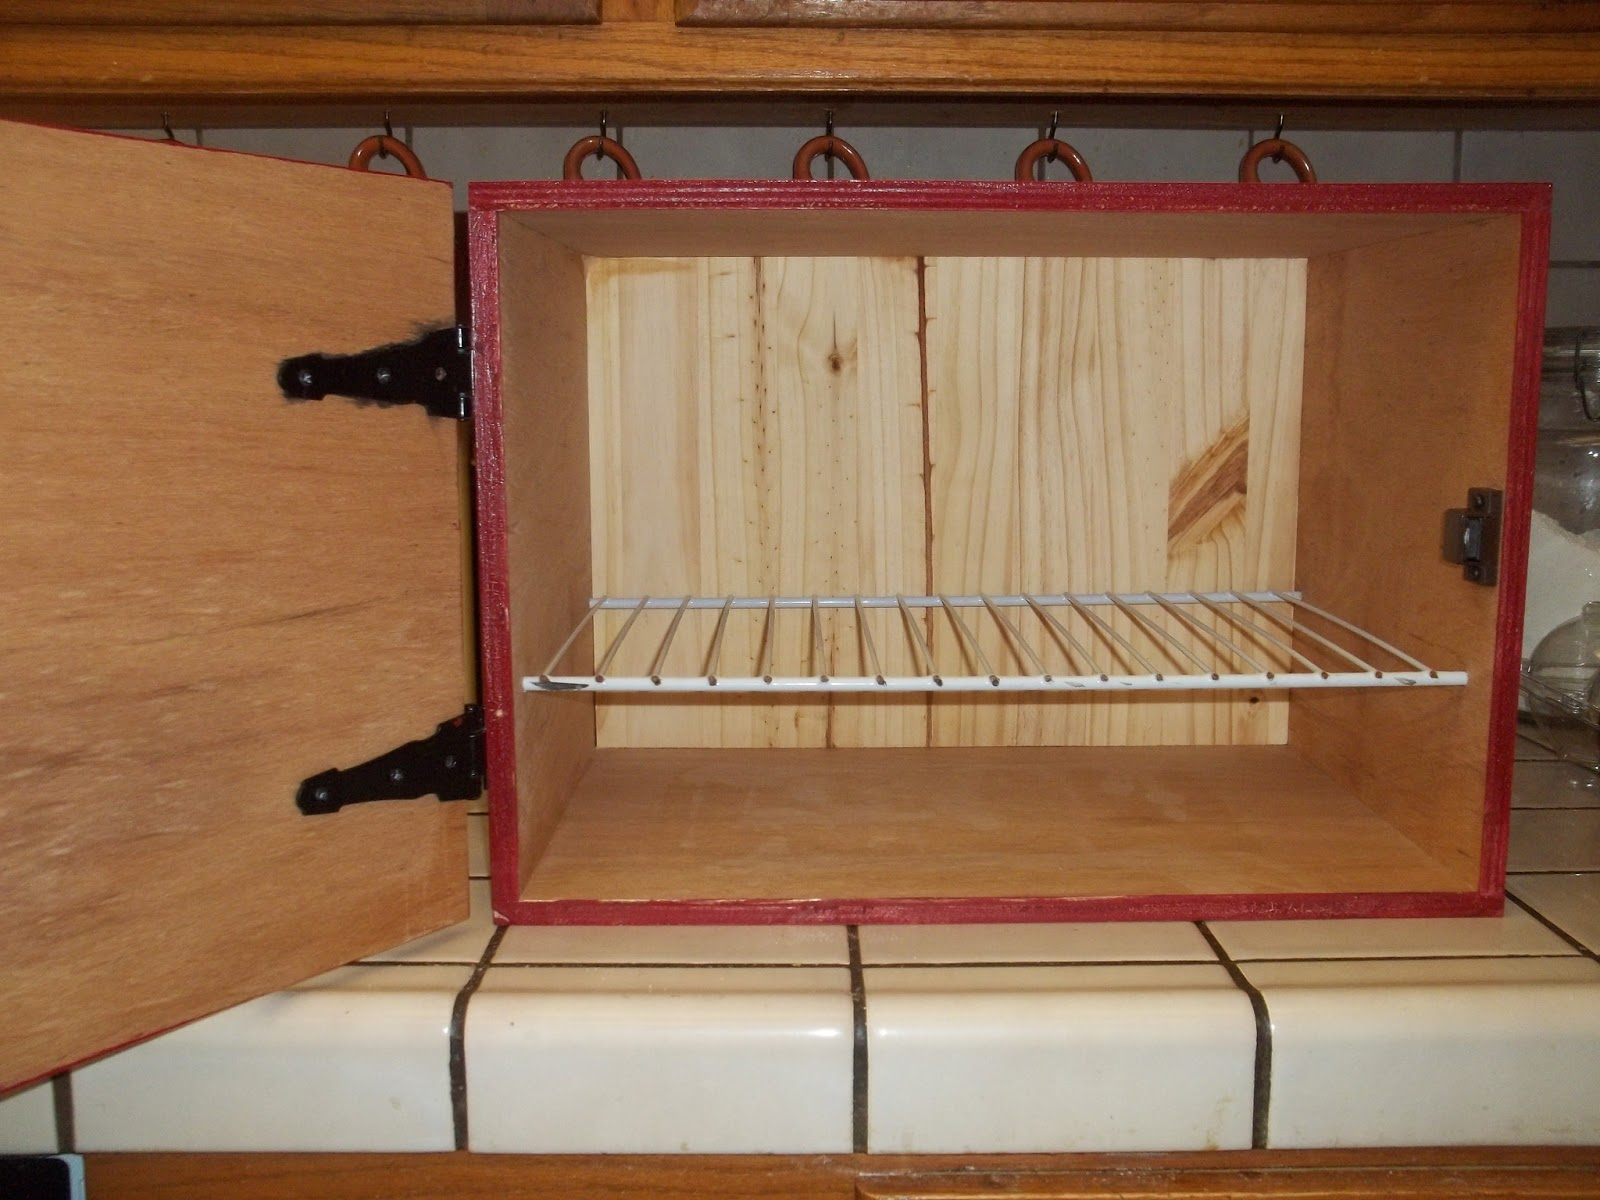 Plans For A Bread Proofing Box